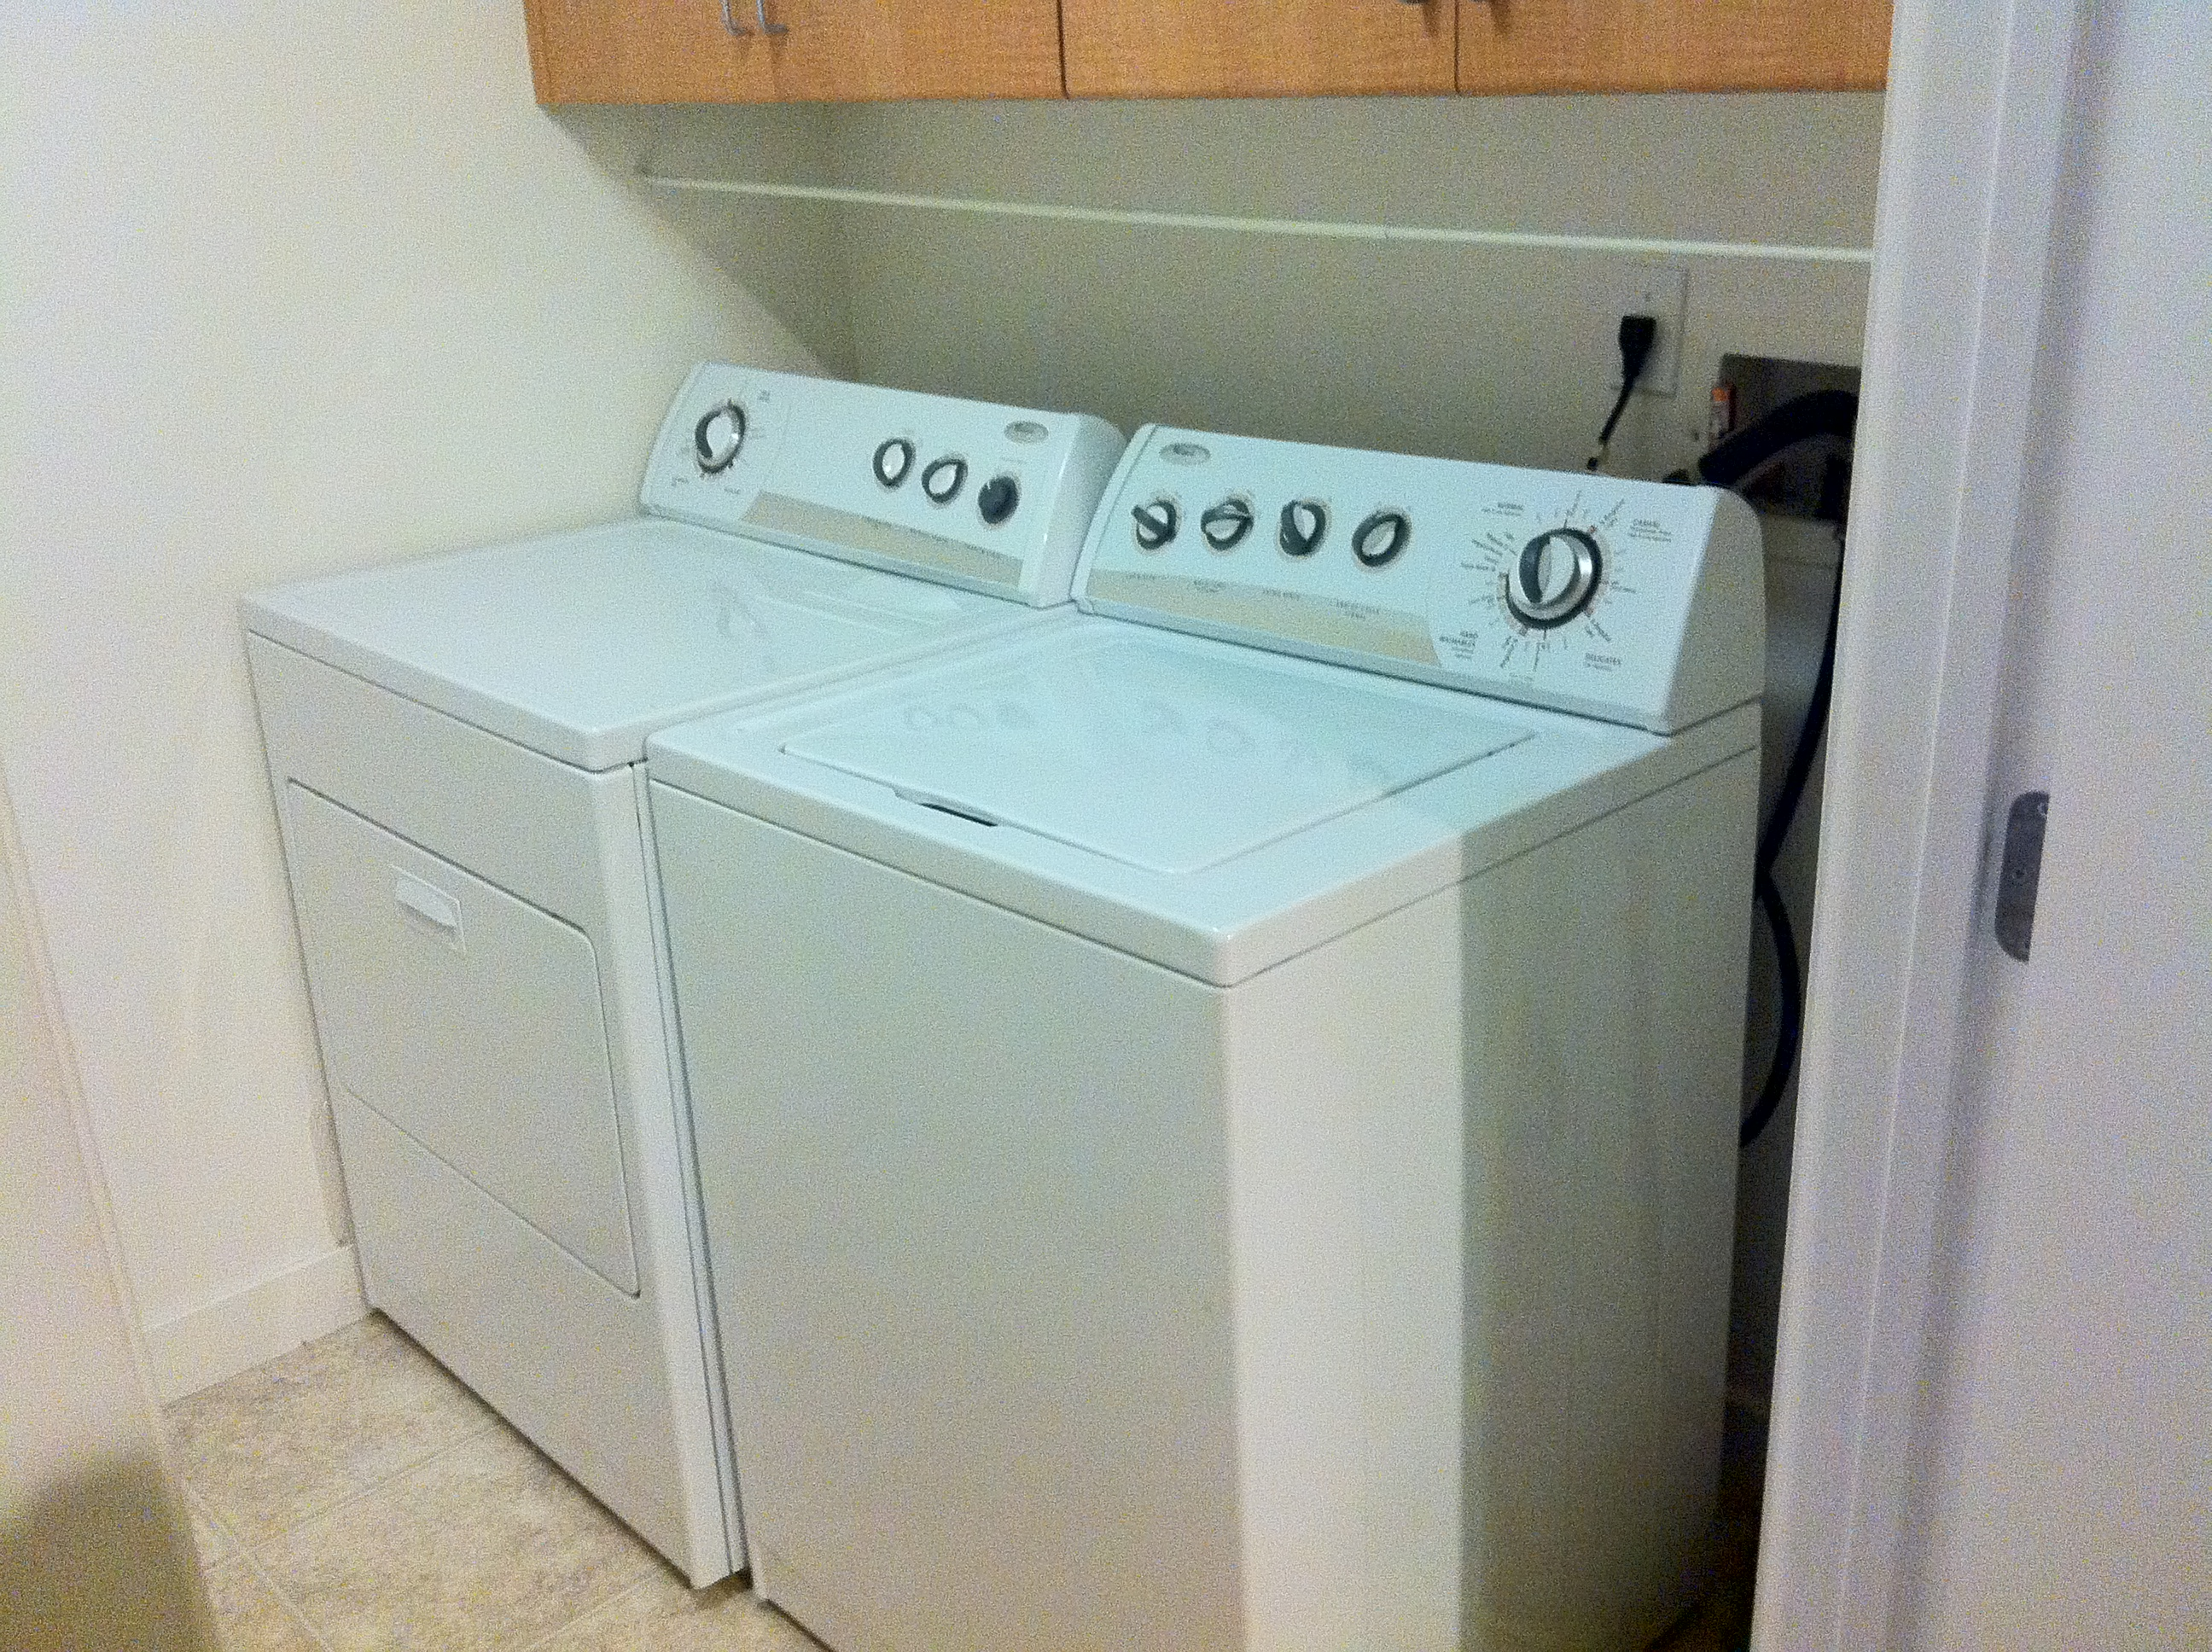 electric washer and dryer in excellent condition $ 350 set